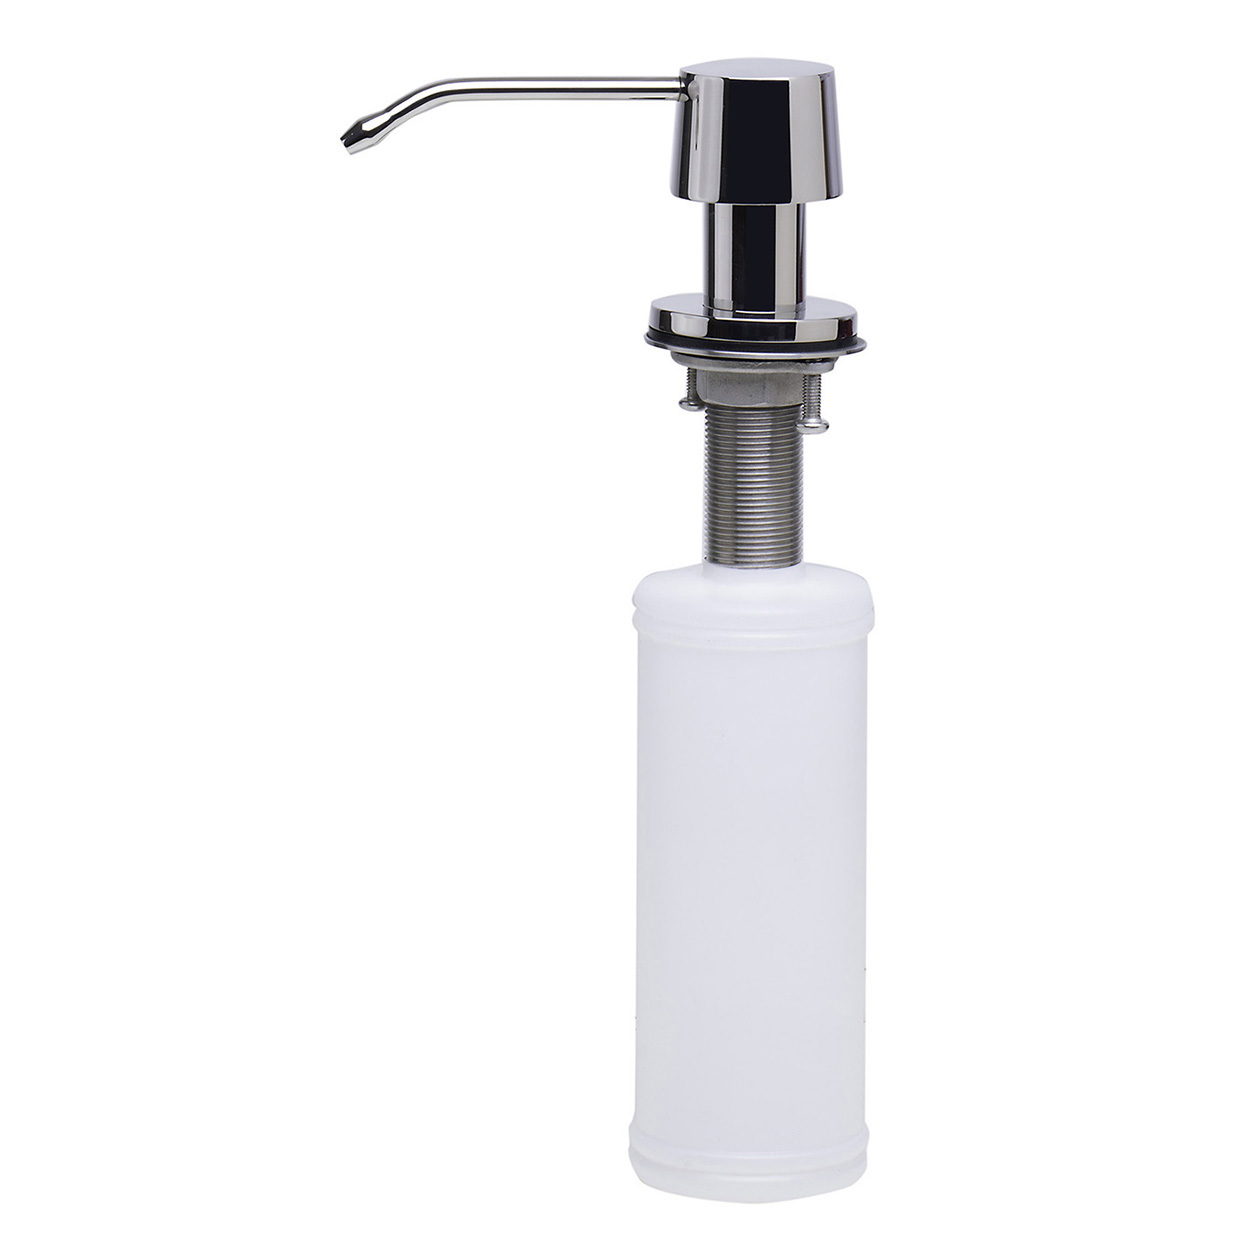 Bath4all Alfi Brand Ab5004 Pss Solid Polished Stainless Steel Modern Soap Dispenser